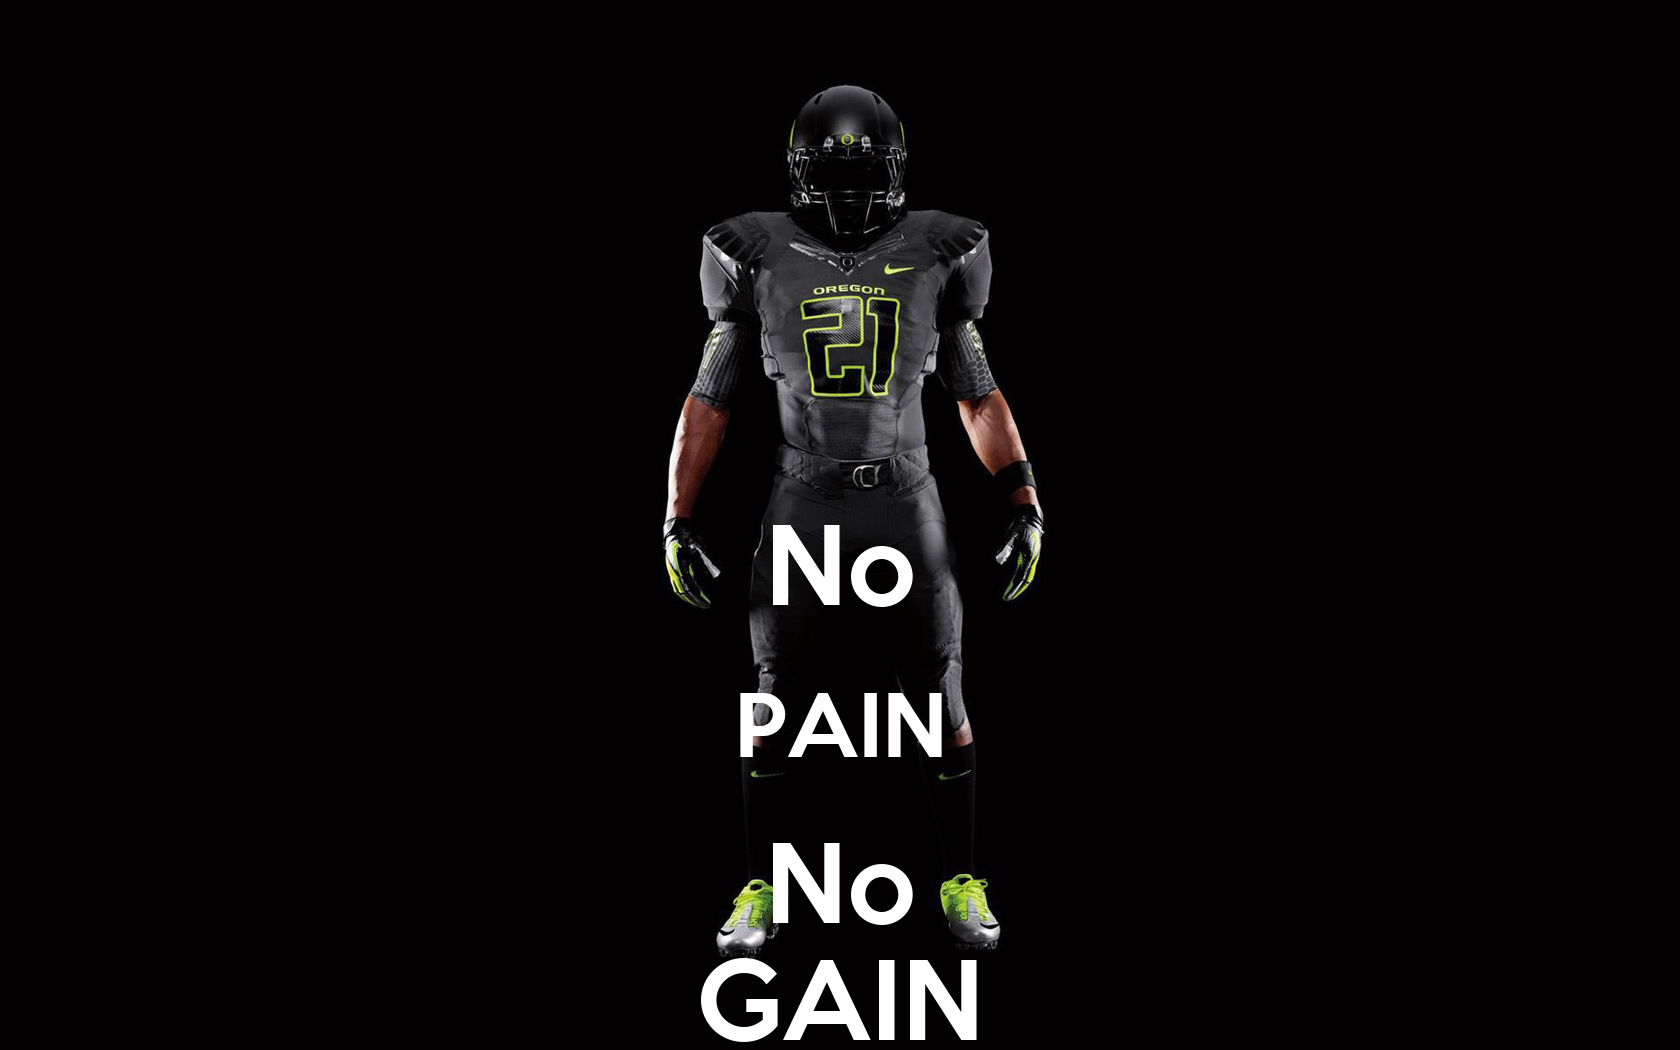 no pain gain wallpapers - photo #13